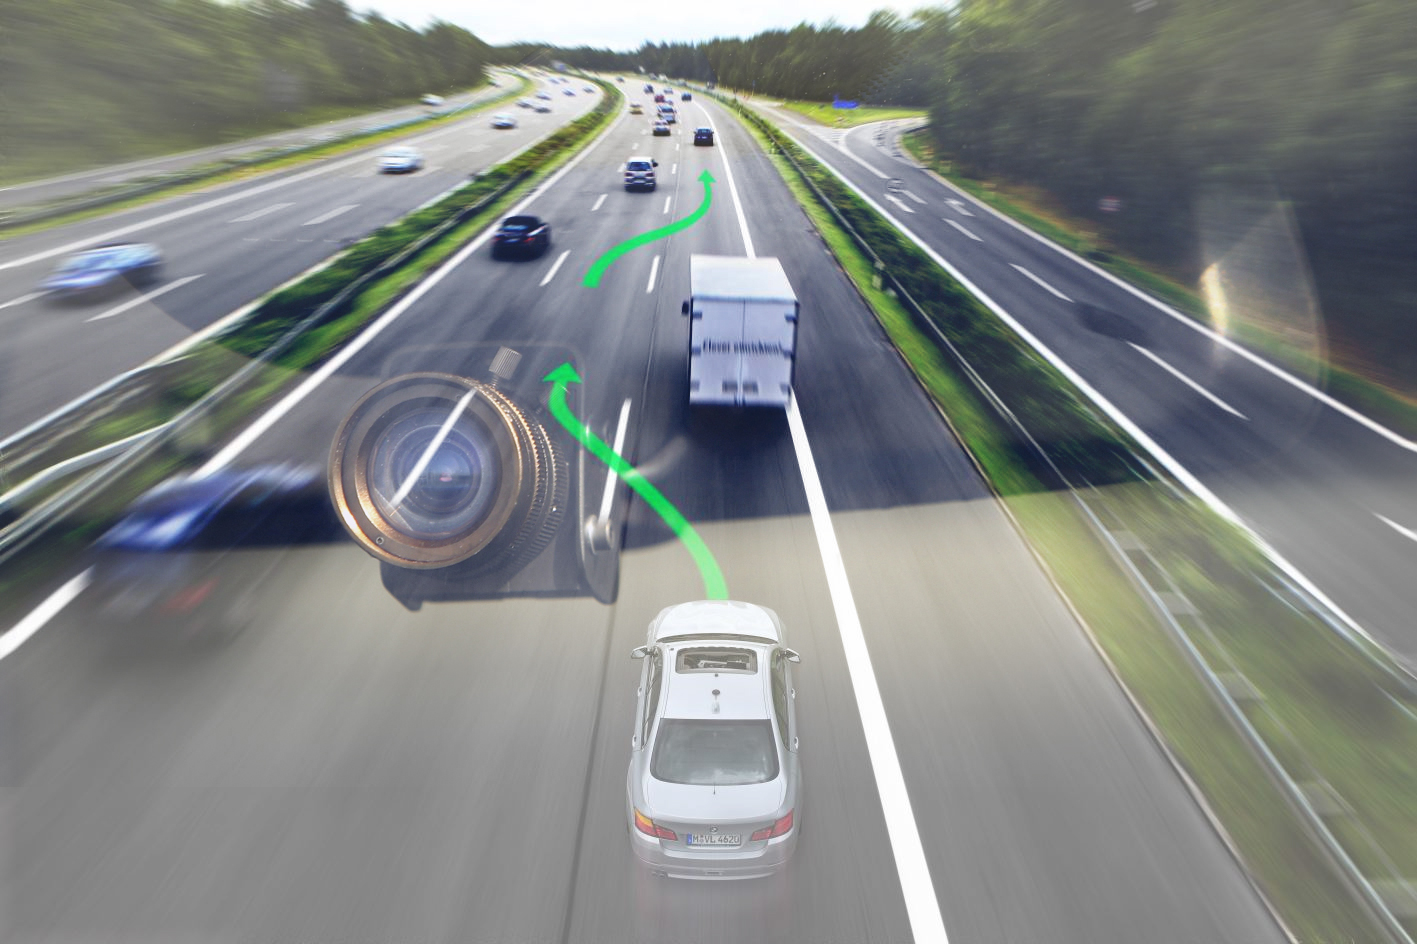 BMW To Collaborate With Intel On Autonomous Technology